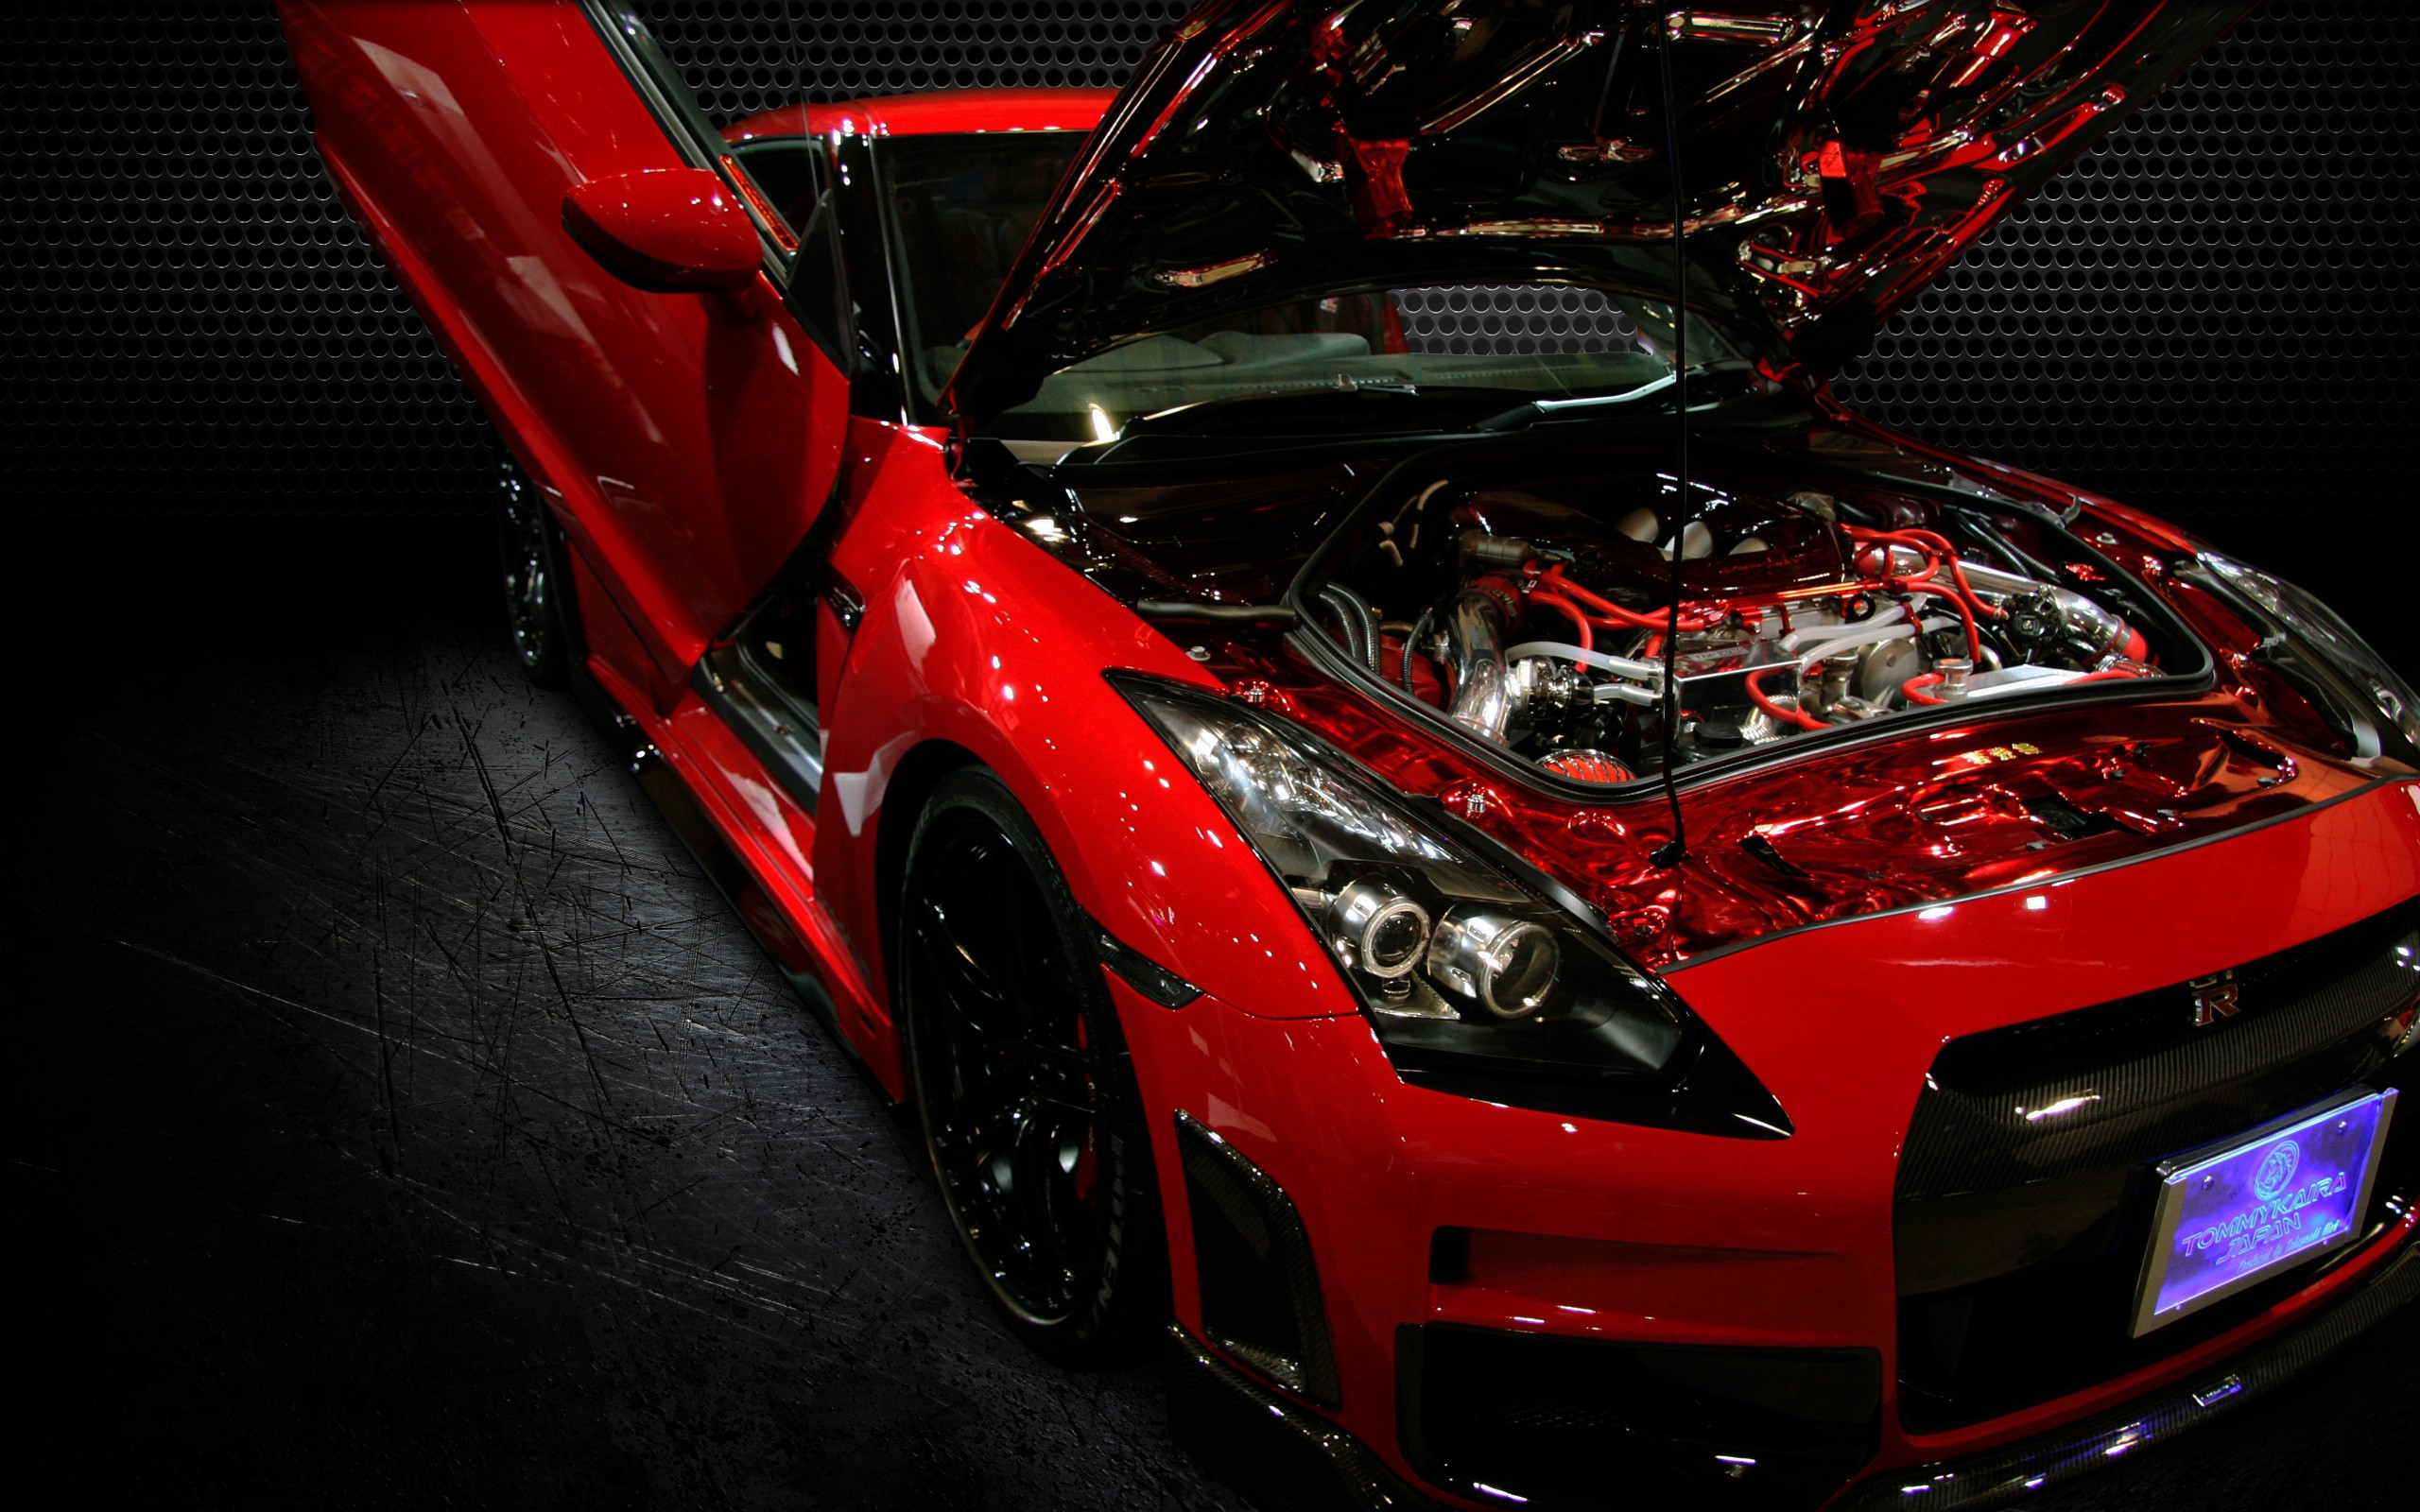 Nissan Gt R Red Car Tuning Wallpaper 2560x1600 17568